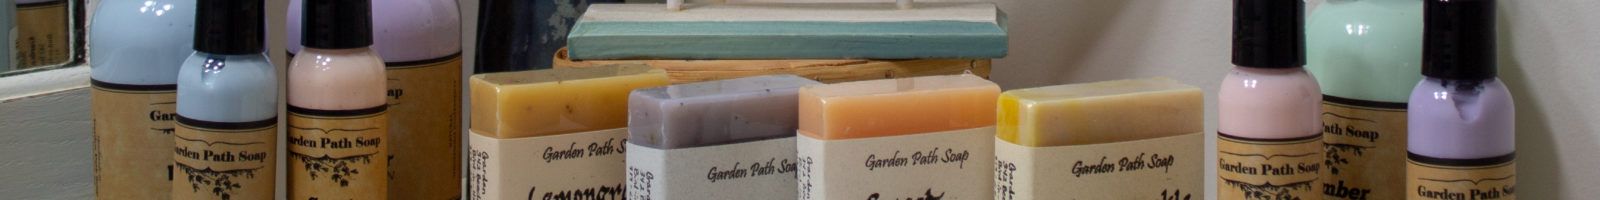 natural handmade soaps and lotions garden path